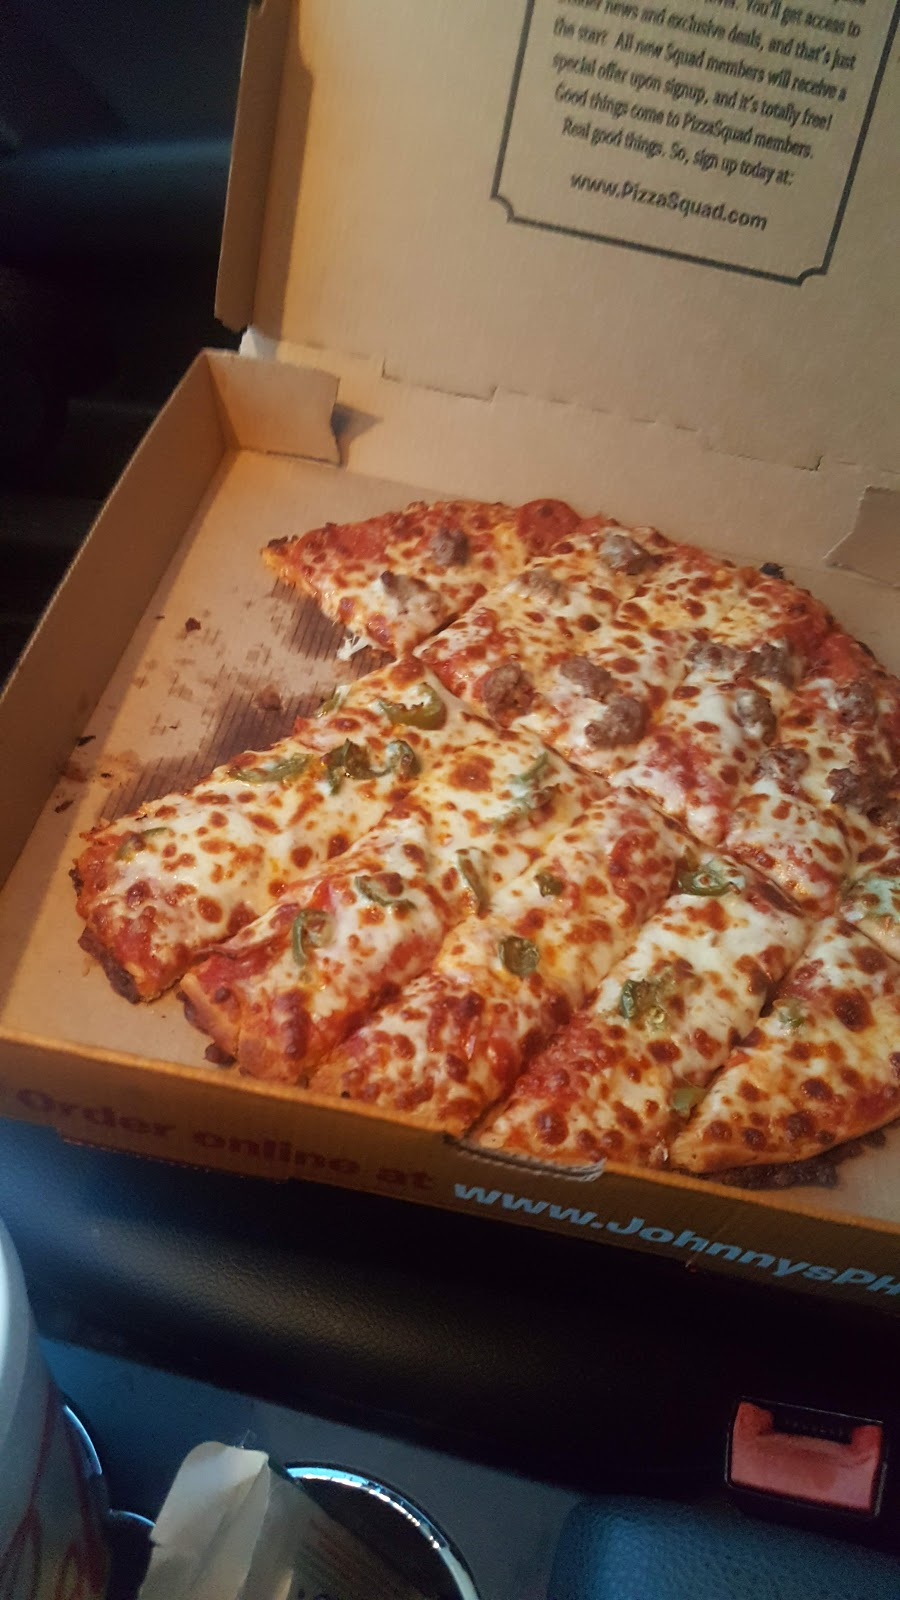 Johnnys Pizza House | meal delivery | 1109 Cooktown Rd, Ruston, LA 71270, USA | 3182511006 OR +1 318-251-1006